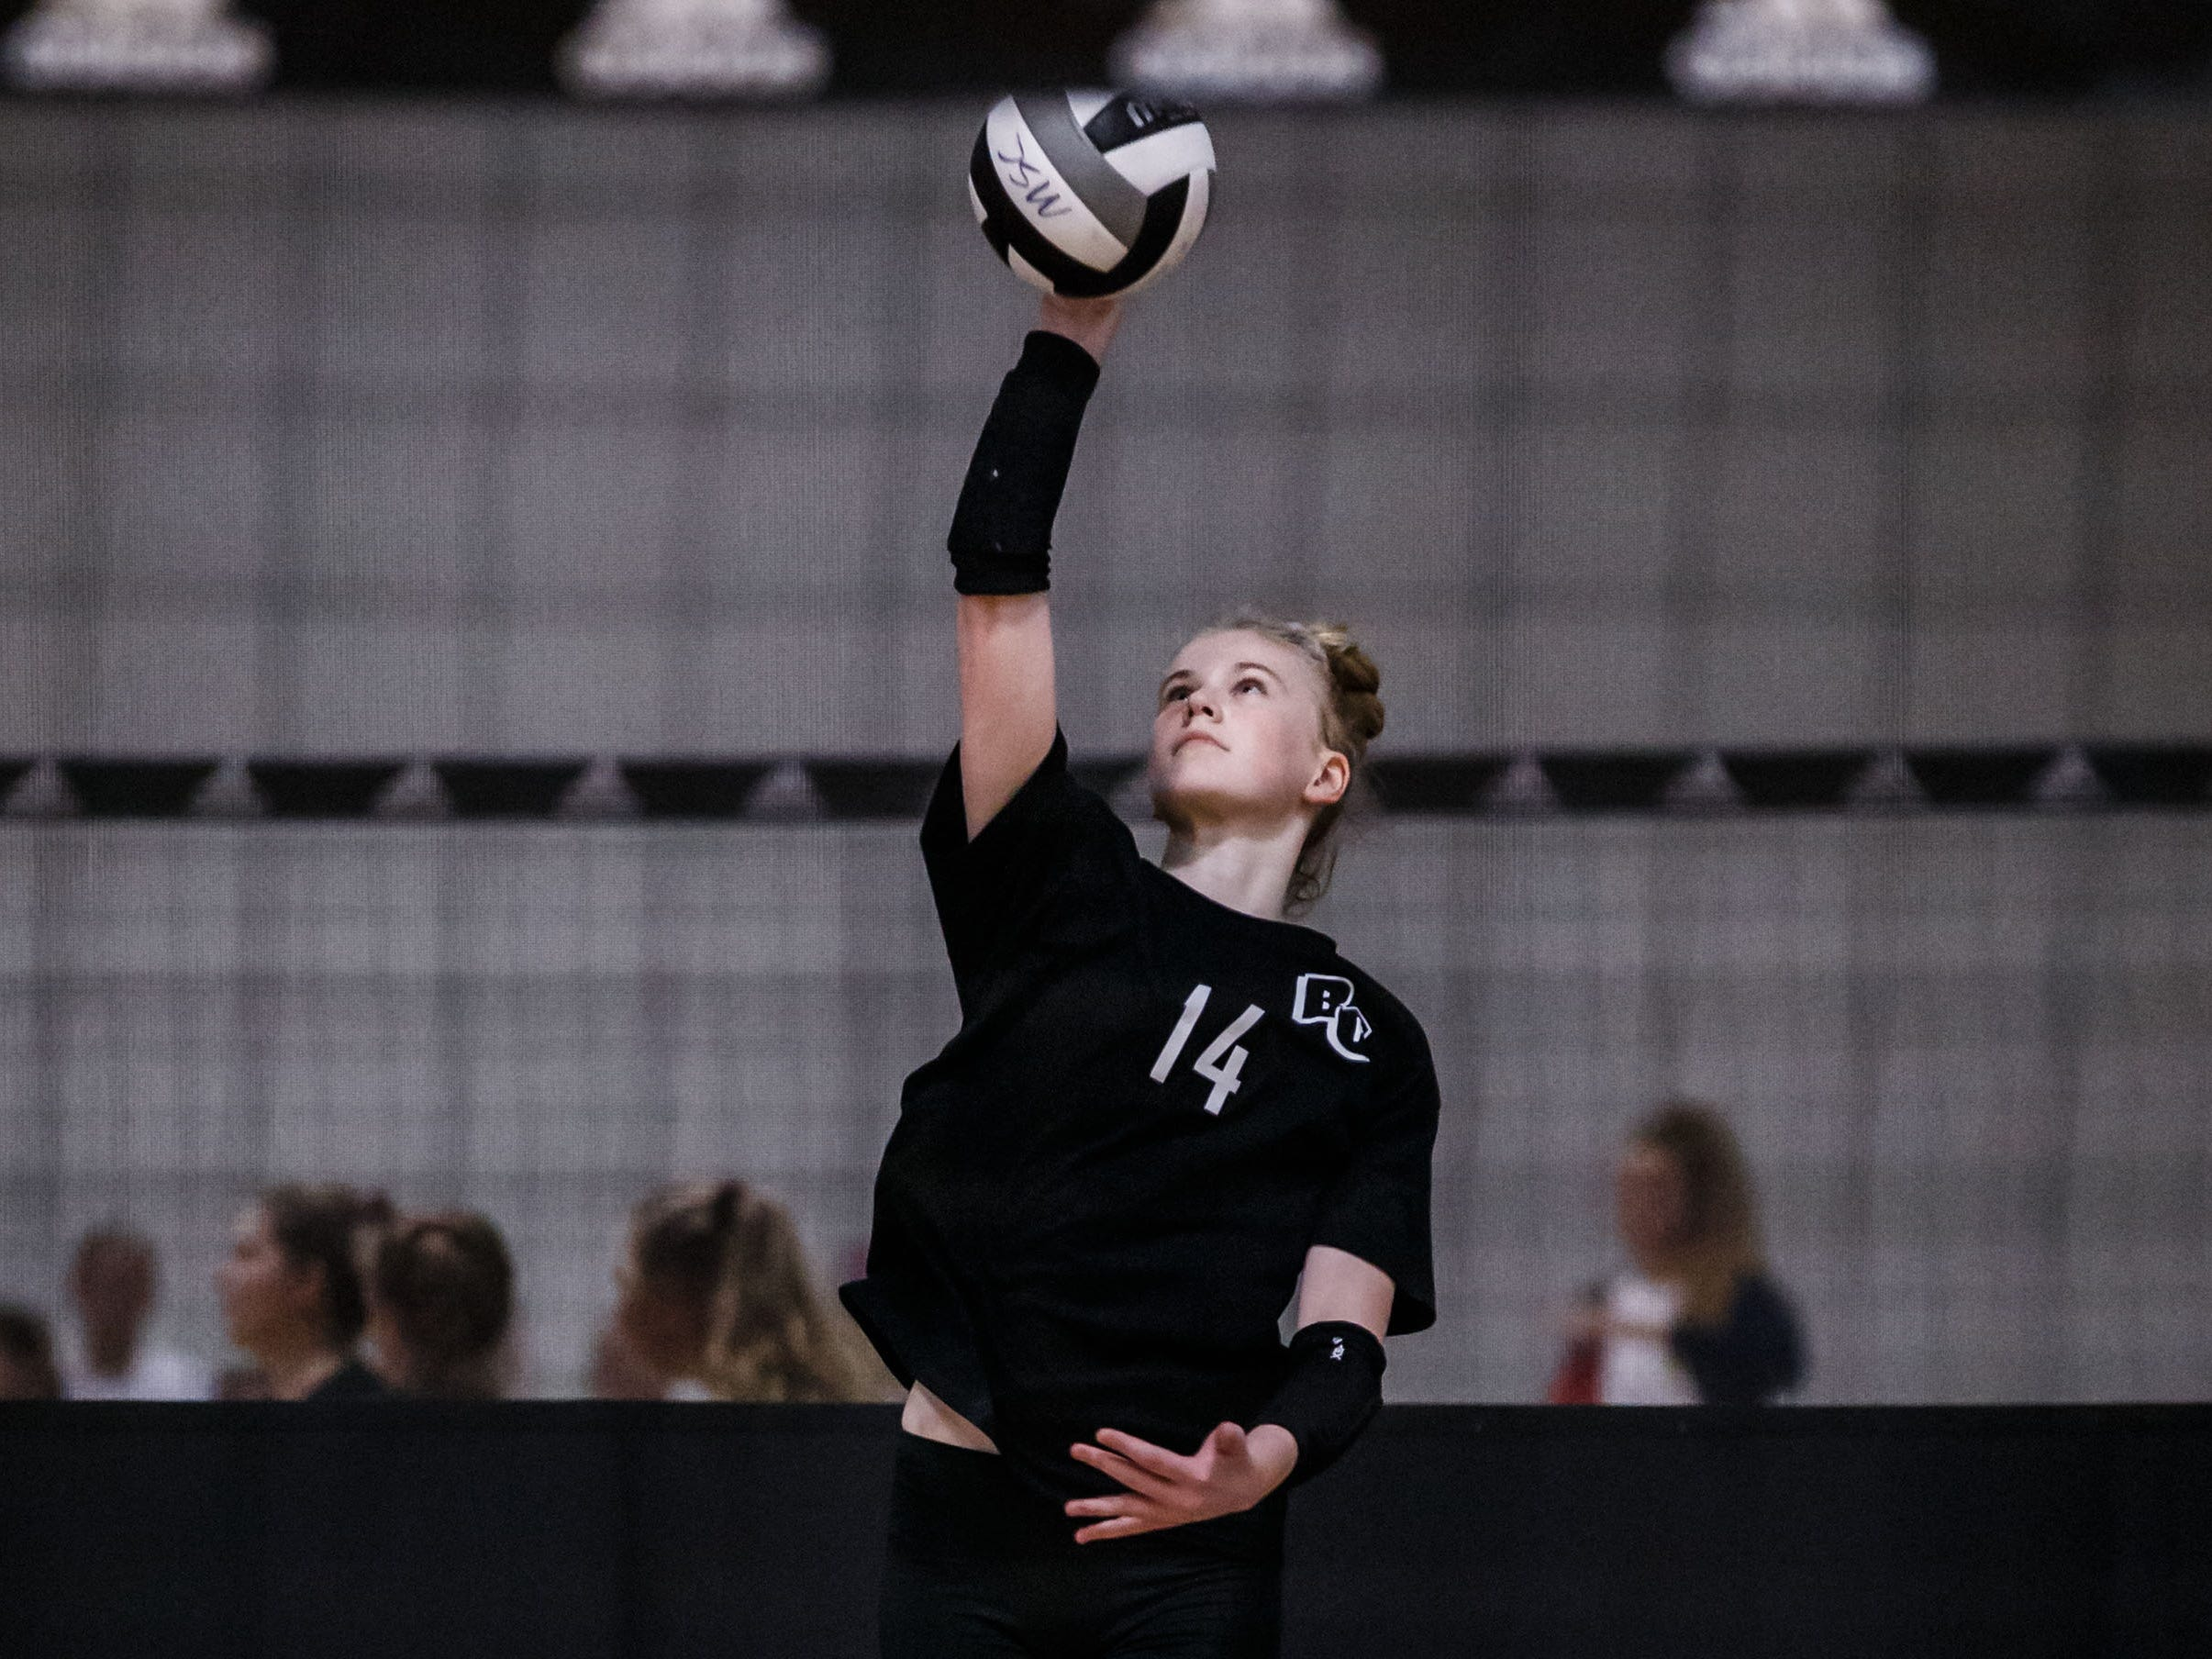 Brookfield Central freshman Mckenna Wucherer (14) serves during a match at the 2018 Eastbay Charger Challenge hosted by Sussex Hamilton at the Milwaukee Sting Center in Menomonee Falls on Saturday, Sept. 15.